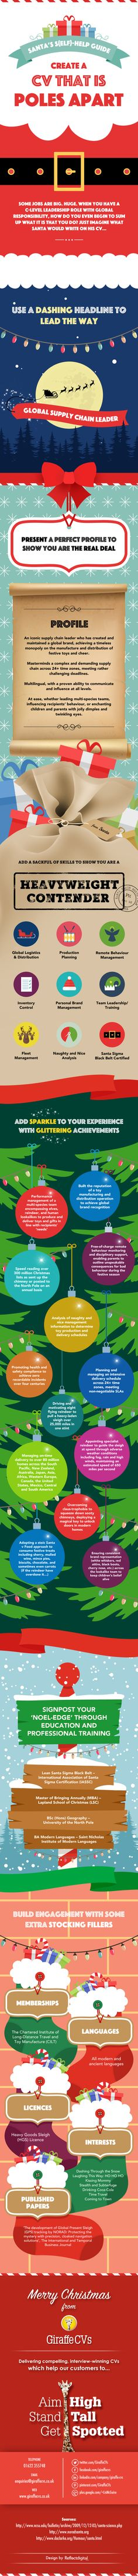 #Santa's (s)elf-help guide to creating a #CV that is poles apart